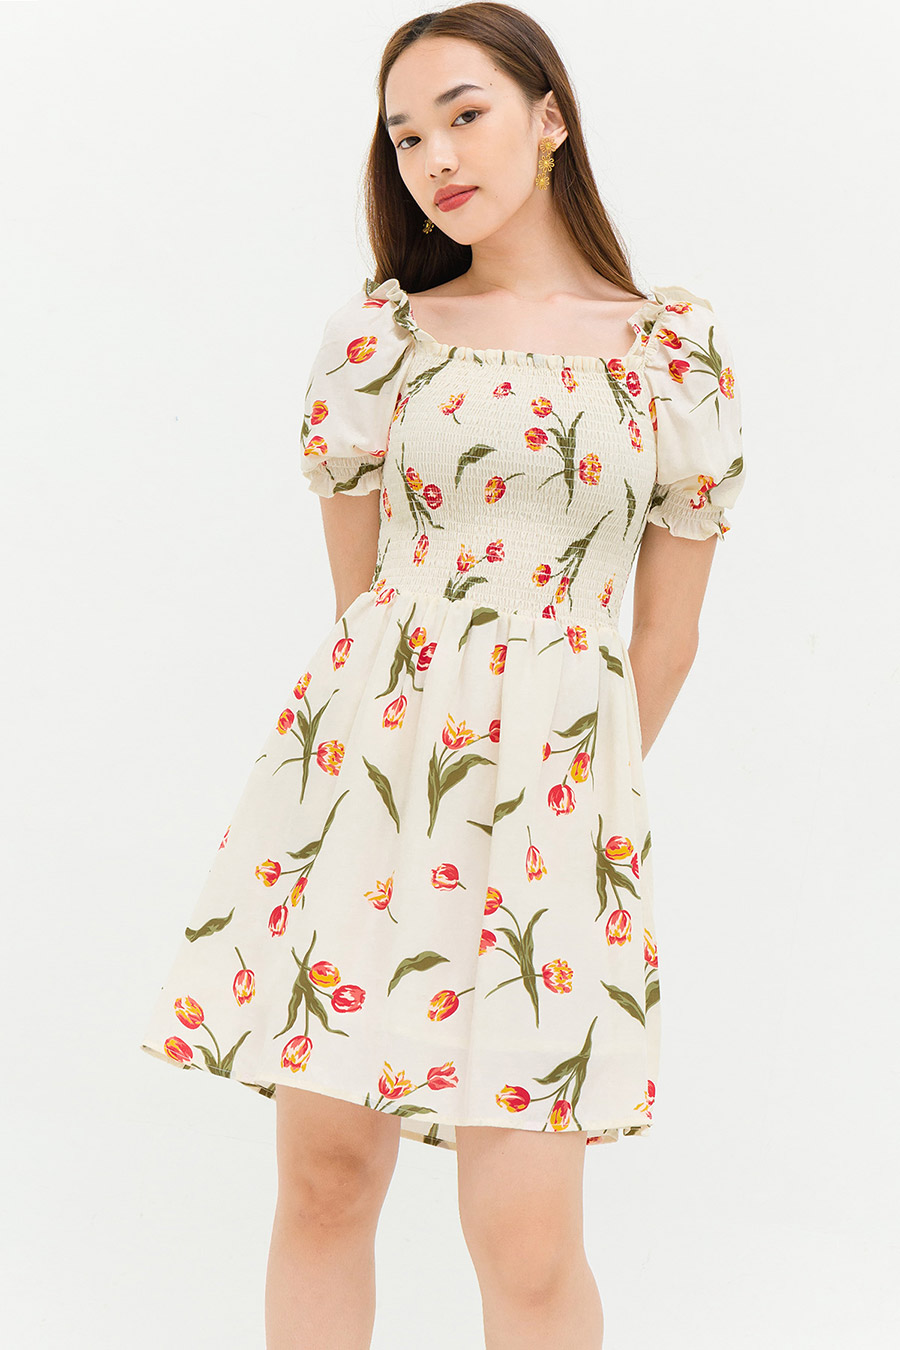 MABEL DRESS - IVORY TULIP